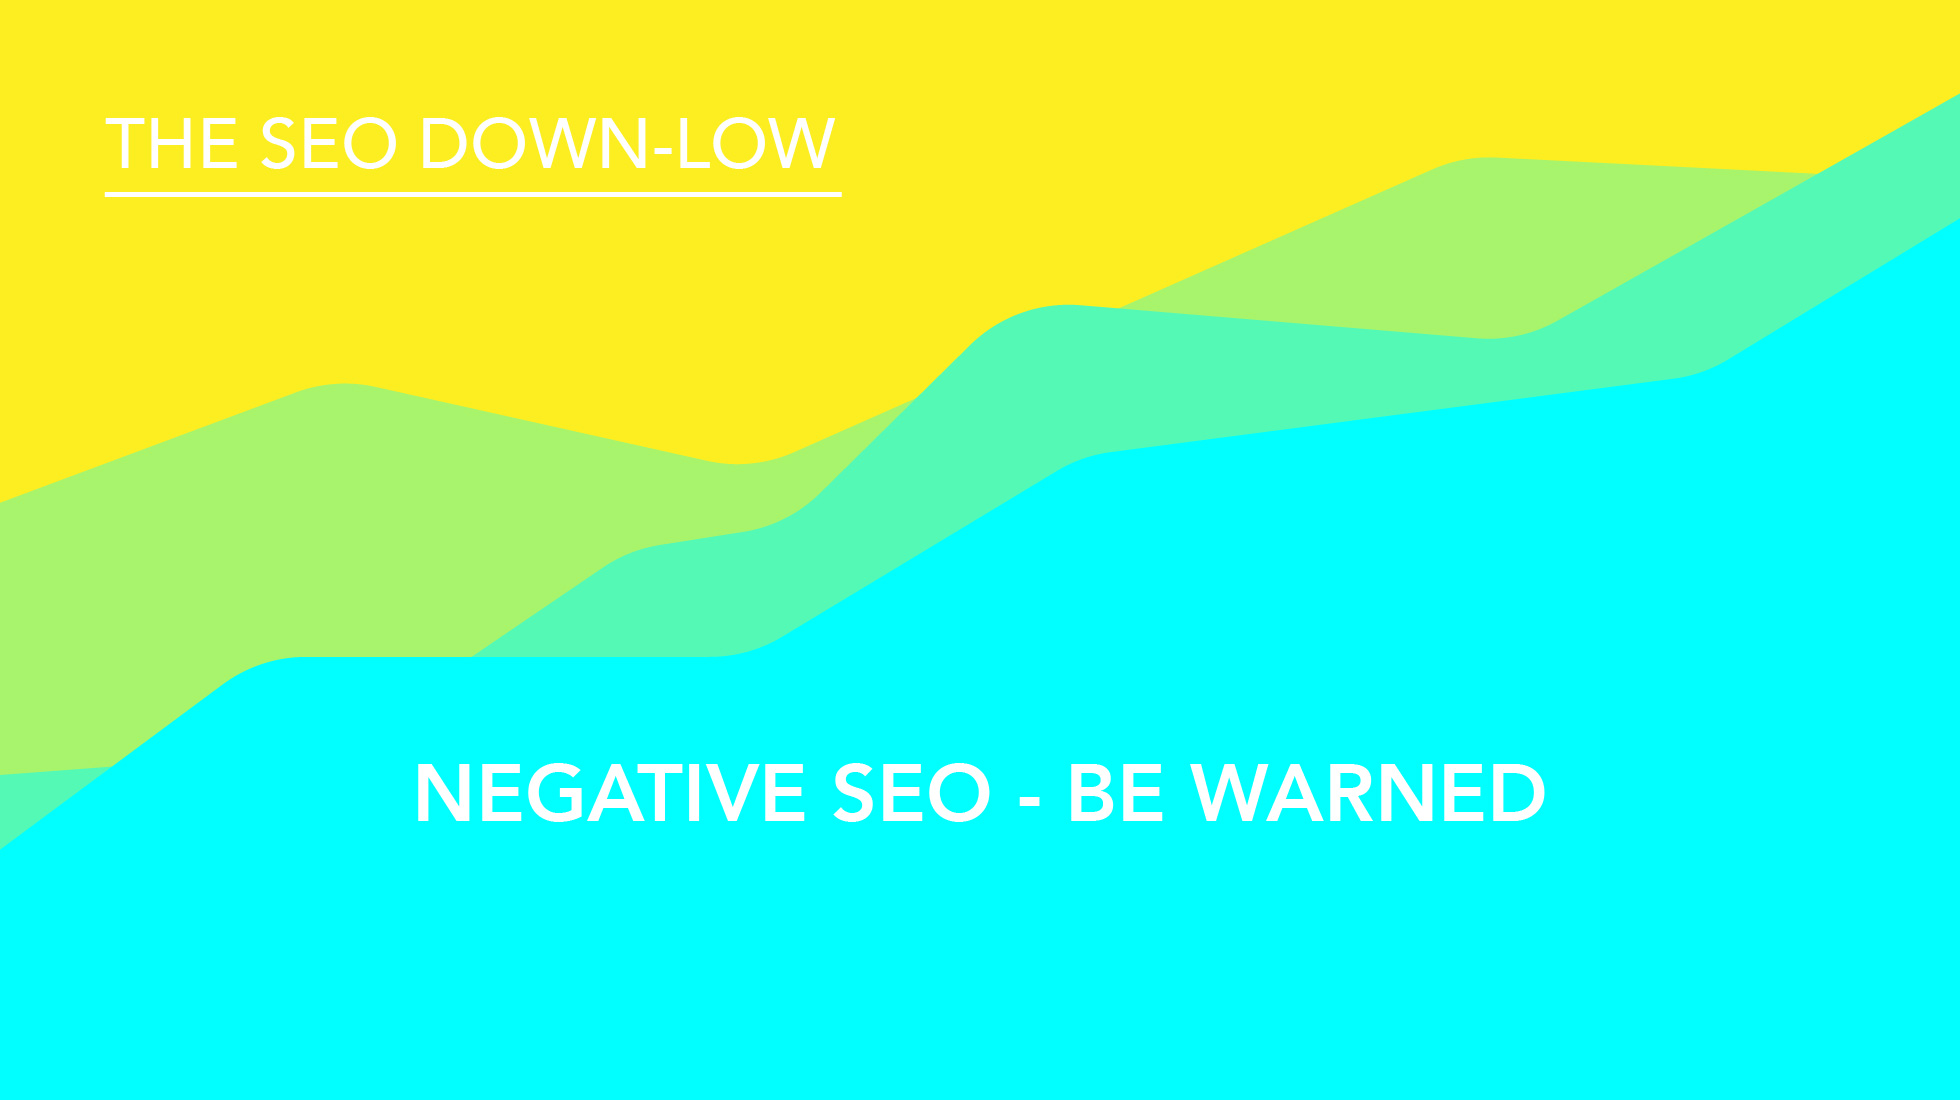 Negative SEO - Be Warned